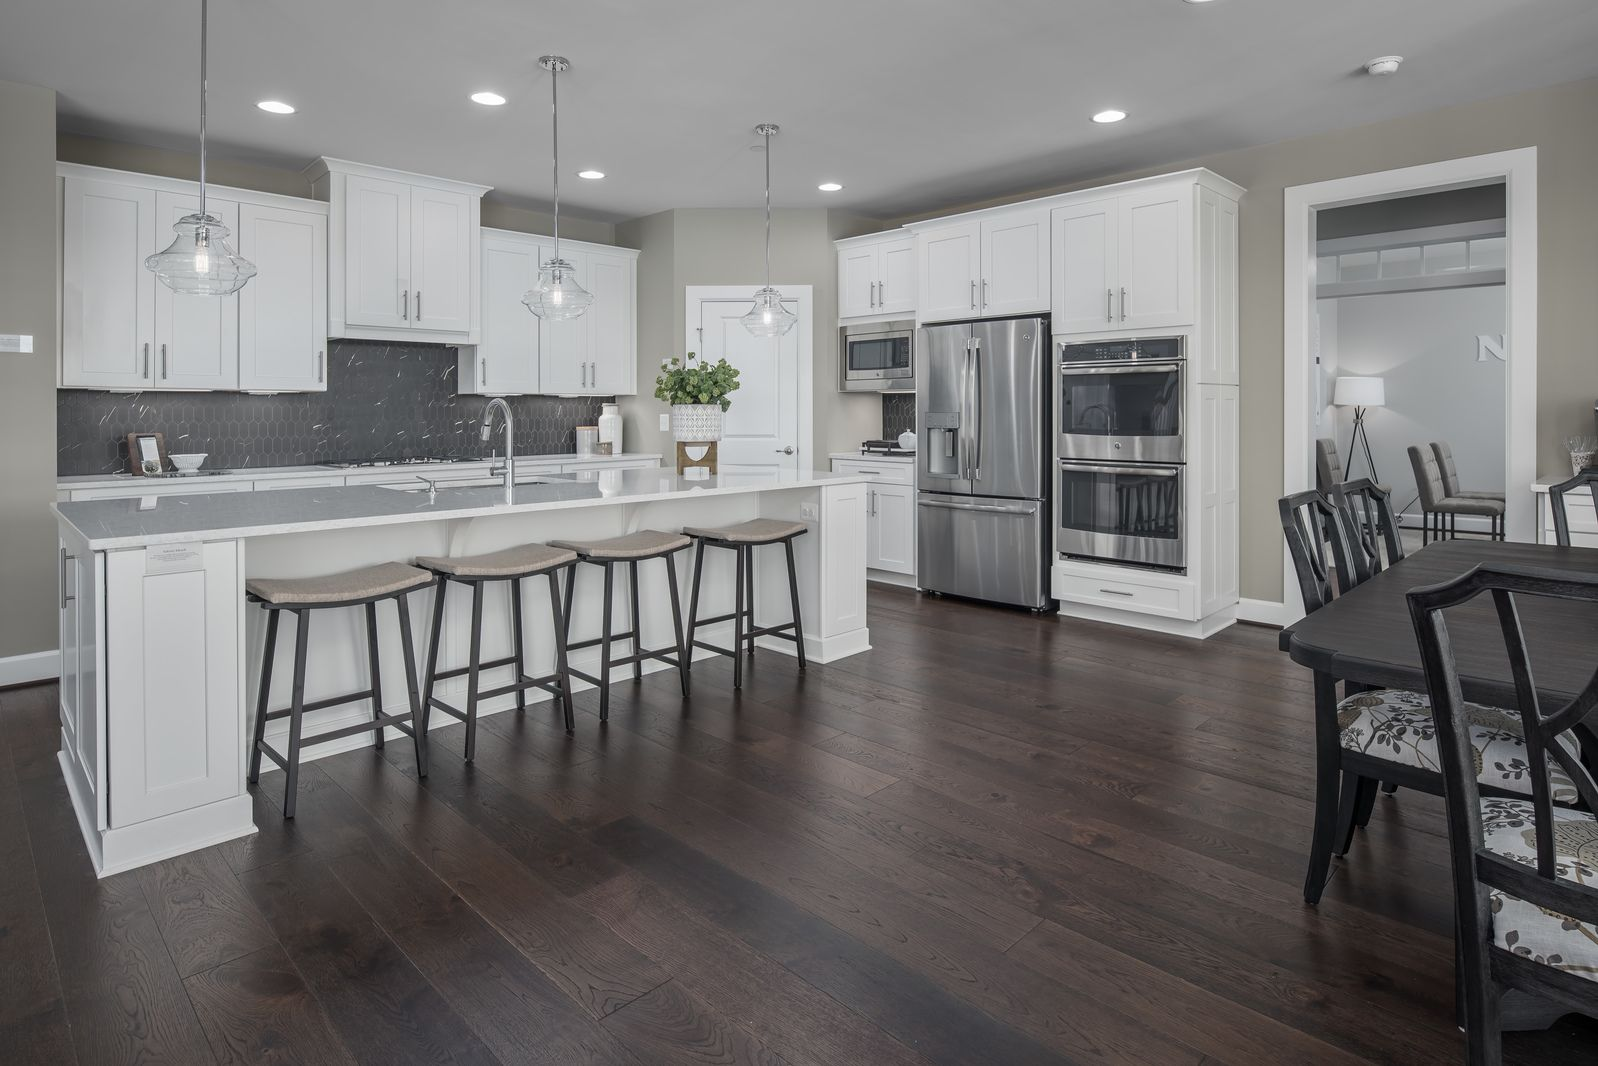 Kitchen featured in the Marymount By NVHomes in Baltimore, MD